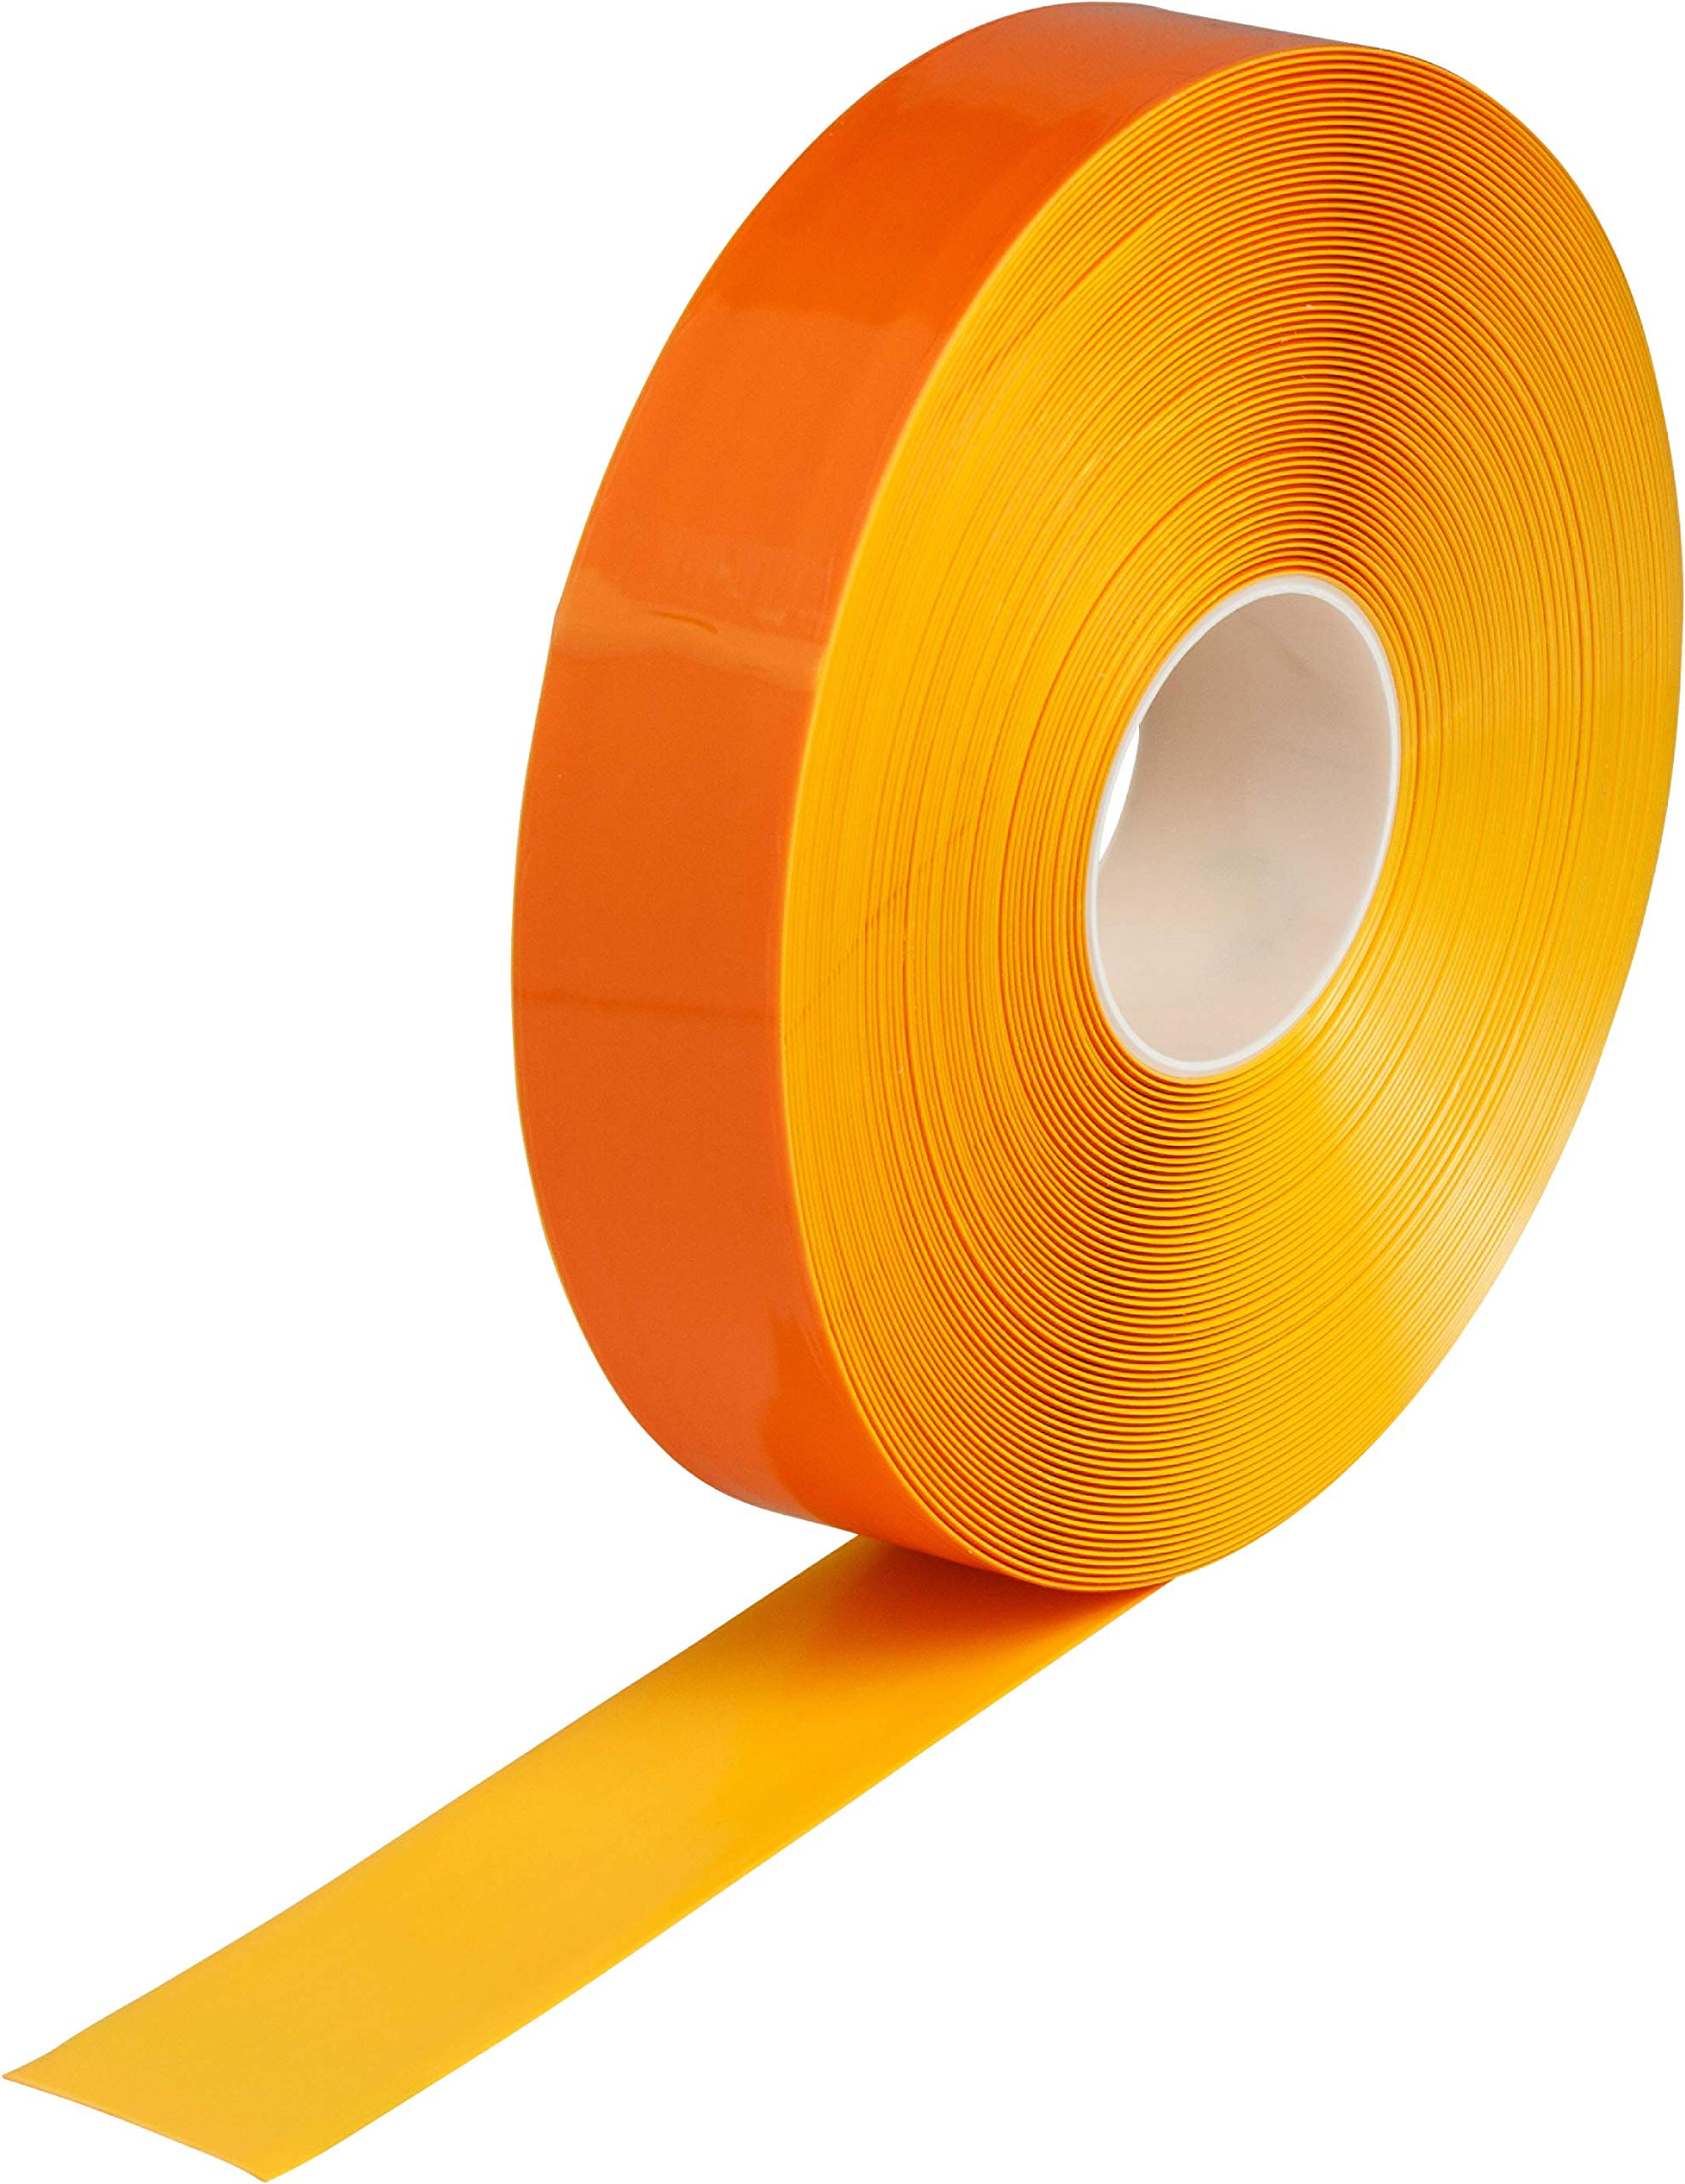 Brady ToughStripe Max Thick Floor Marking Tape - Rugged Facility Floor Marking Tape - 2 in. Width, 100 ft. Length - Yellow